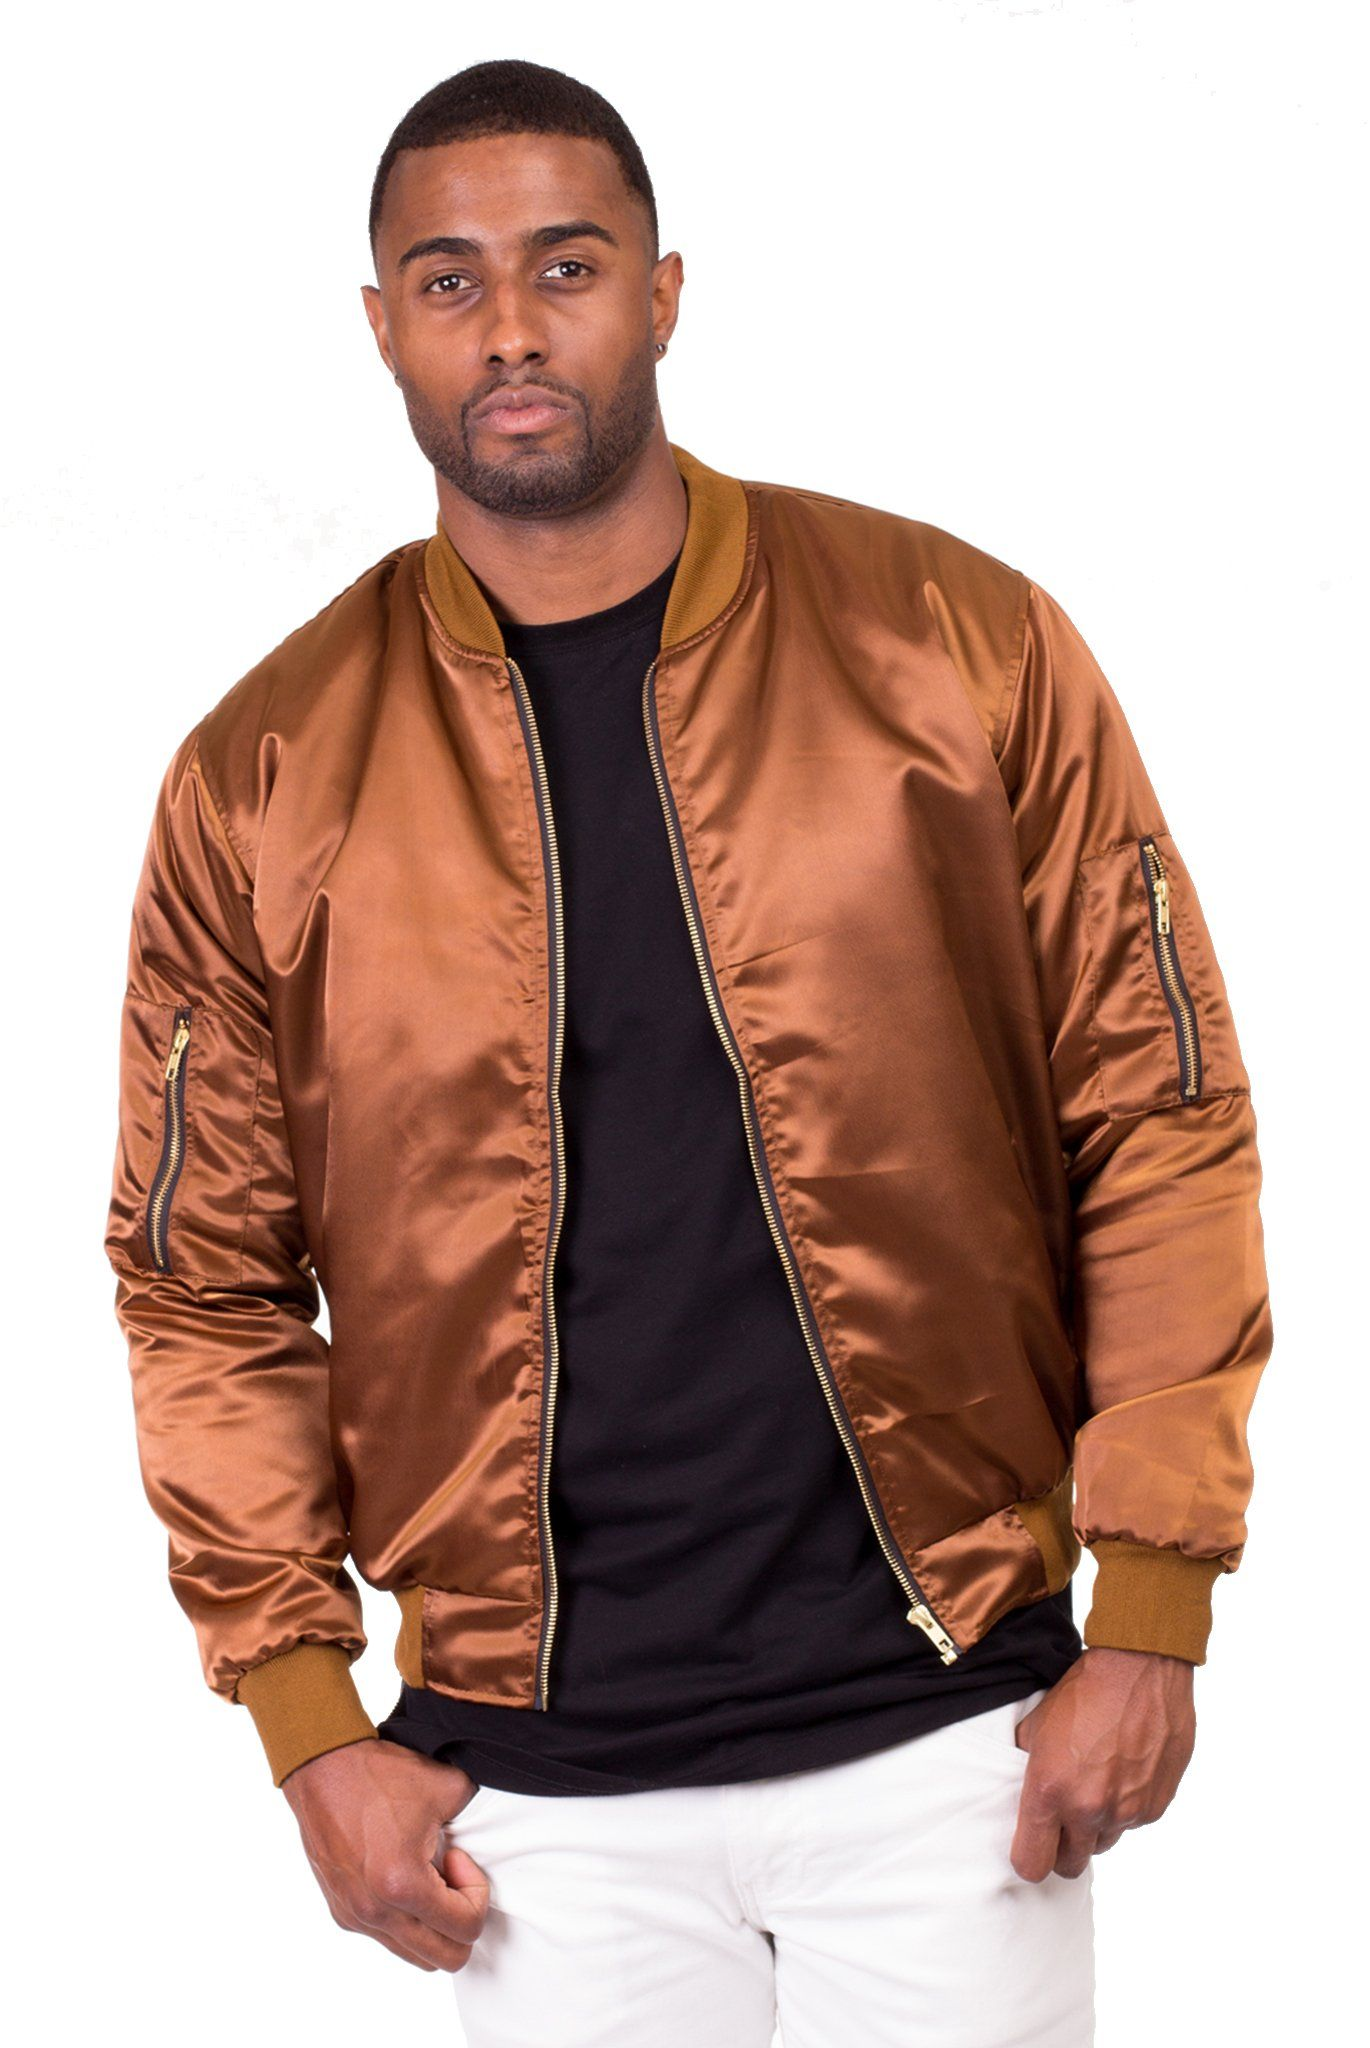 LIMITED EDITION FREEPORT BOMBER JACKET | Poor Little Rich Boy Clothing